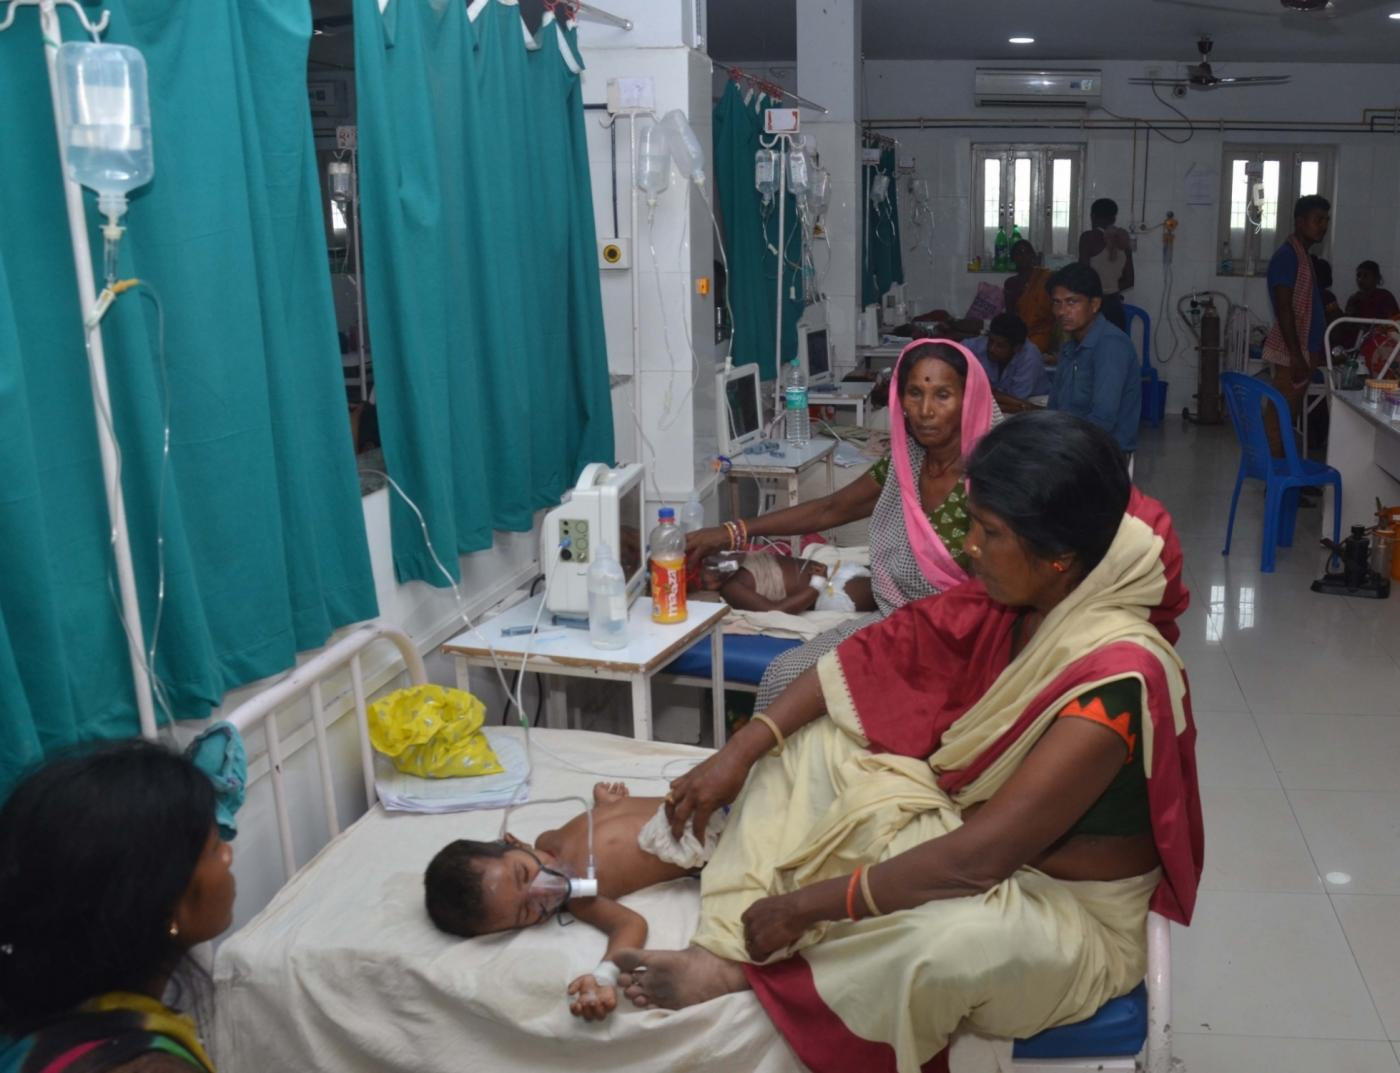 Muzaffarpur: Children with Acute Encephalitis Syndrome (AES) symptoms being treated at hospital in Muzaffarpur, Bihar on June 19, 2019. (Photo: IANS) by .